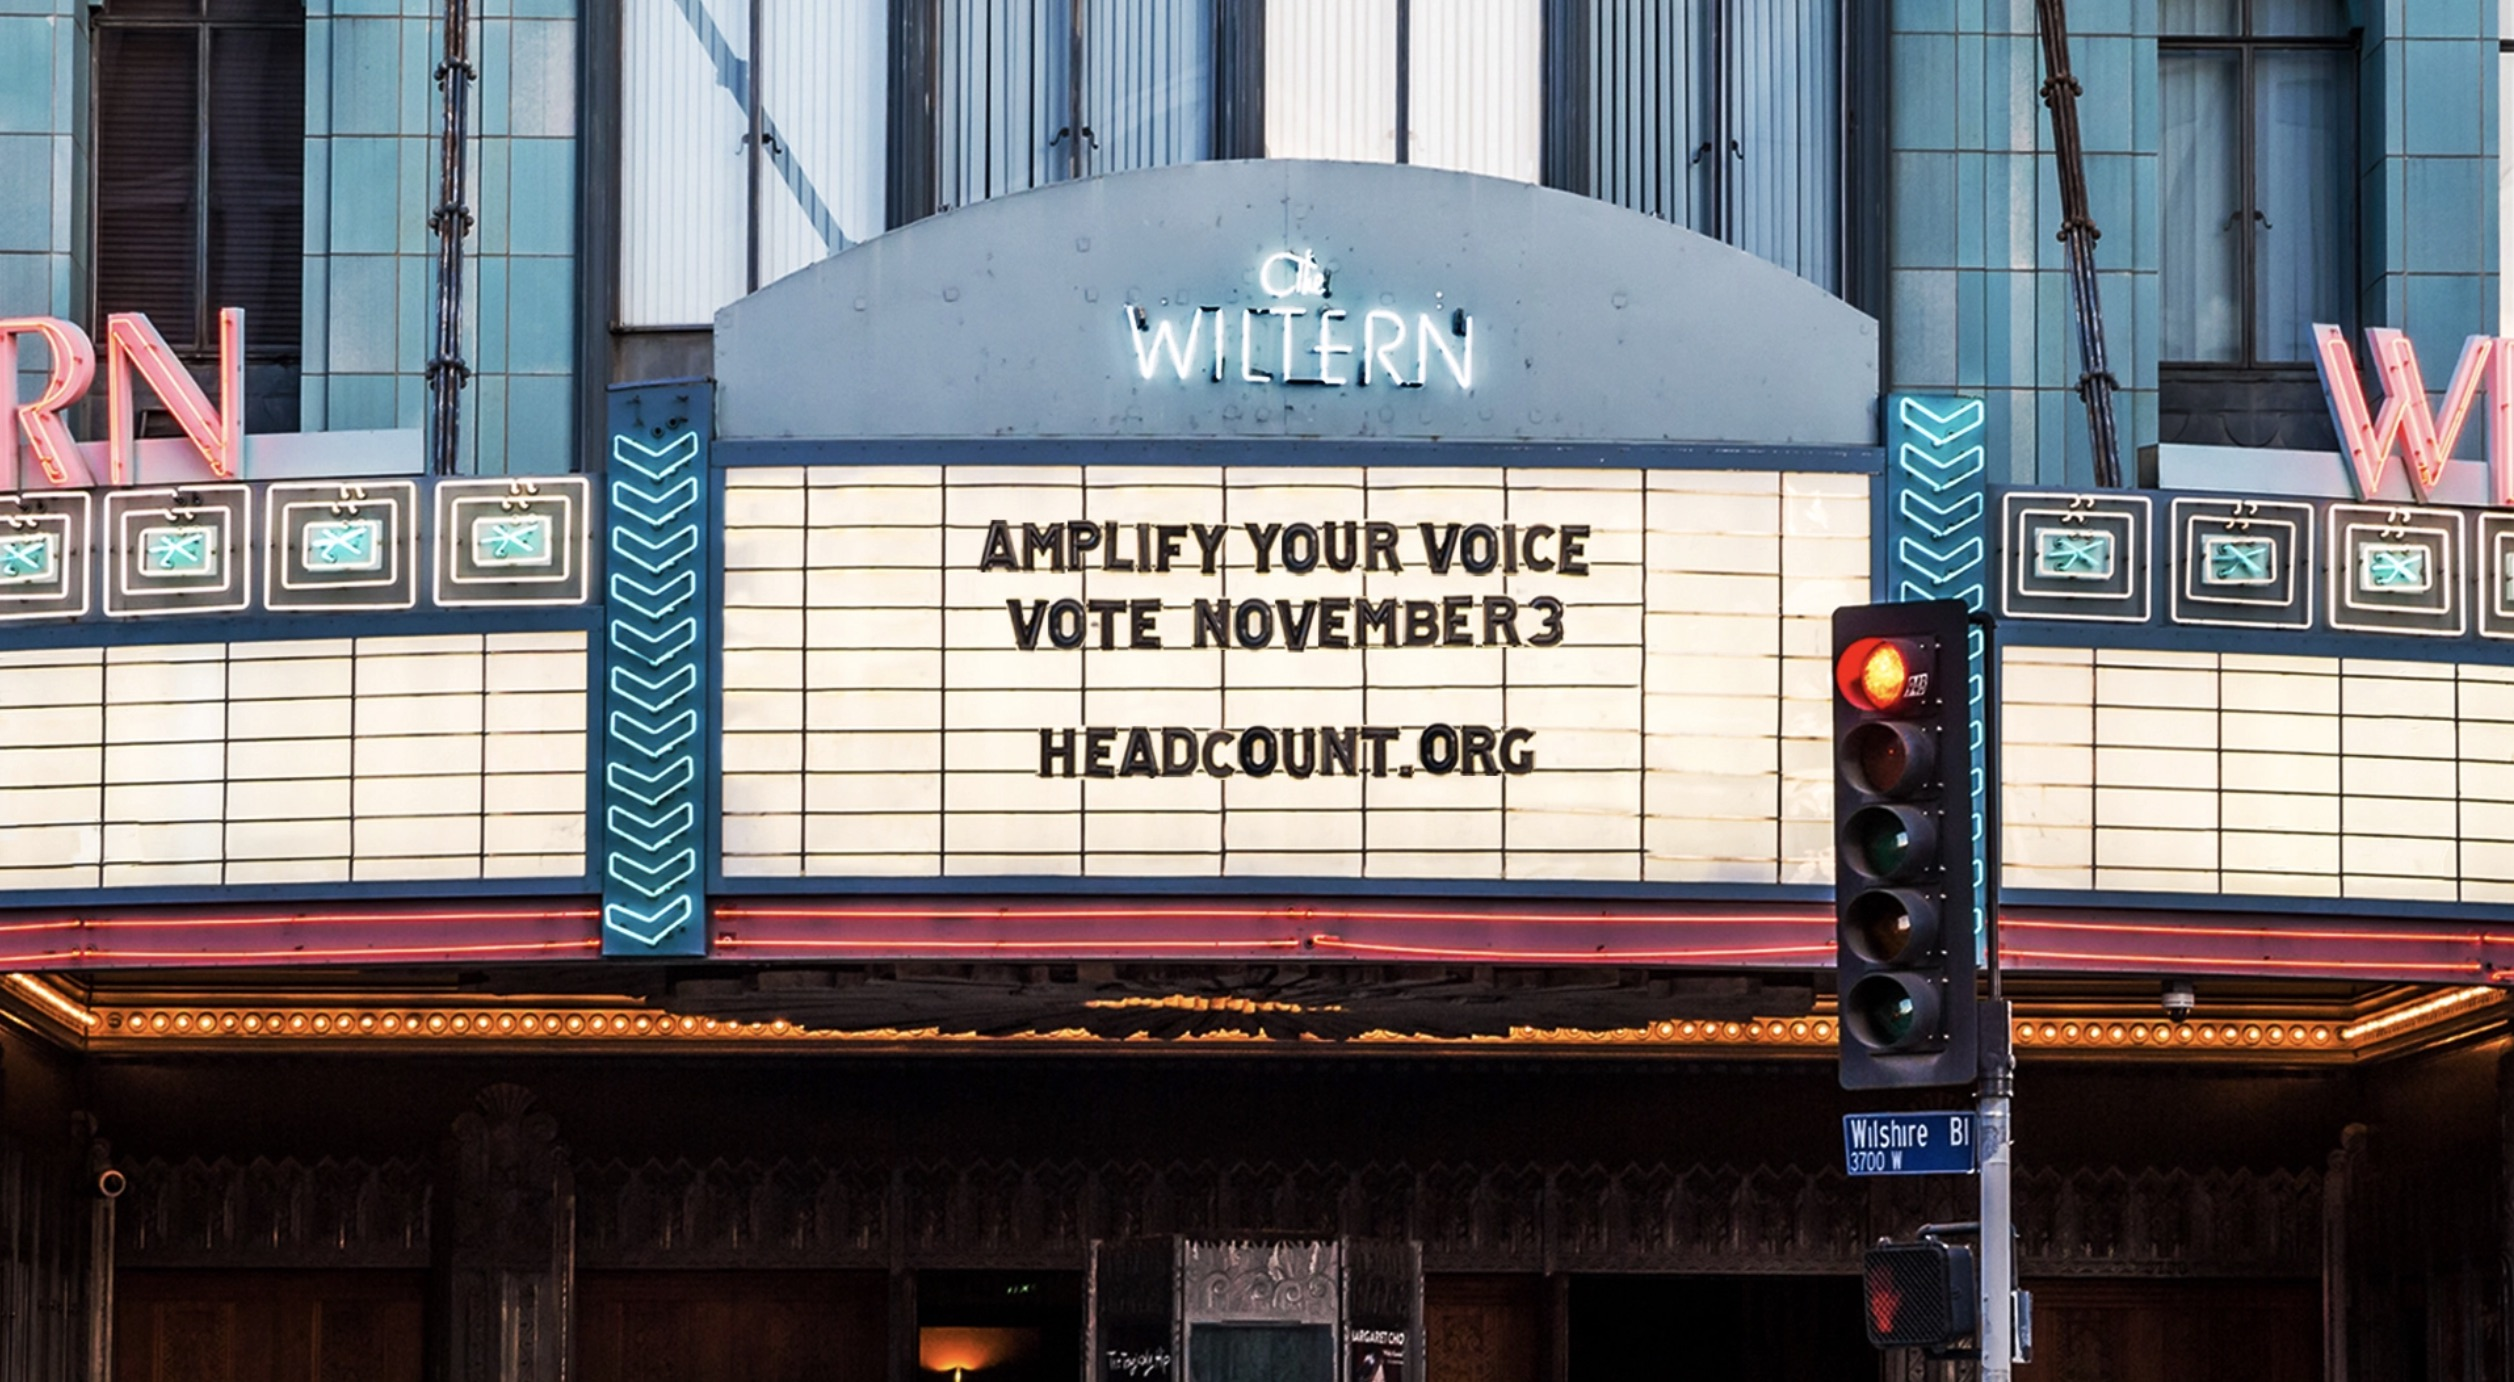 wiltern voting center Election Day 2020